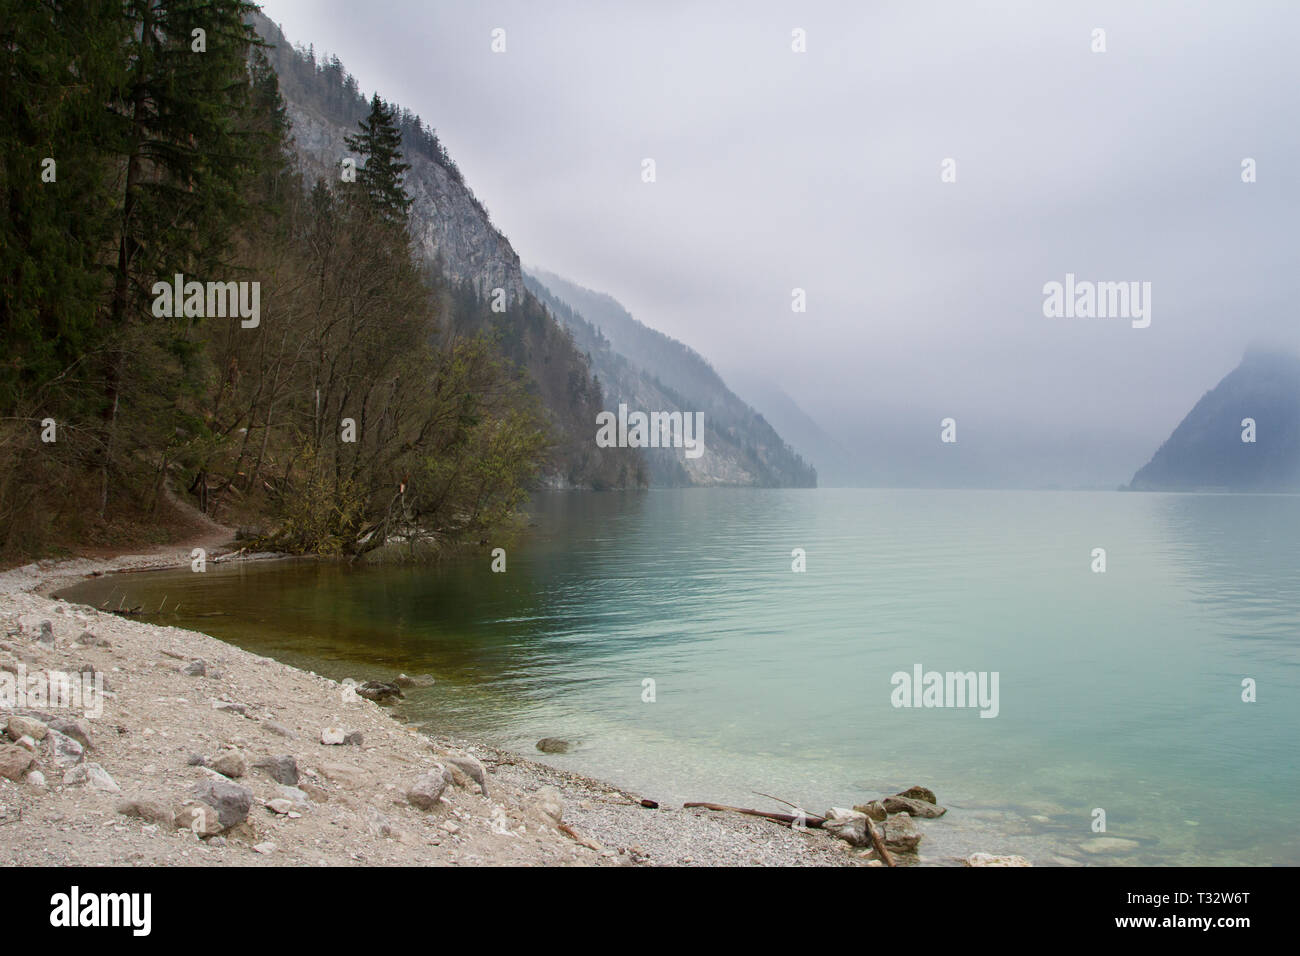 Traunsee, Oberösterreich, Austria in the fog - Stock Image